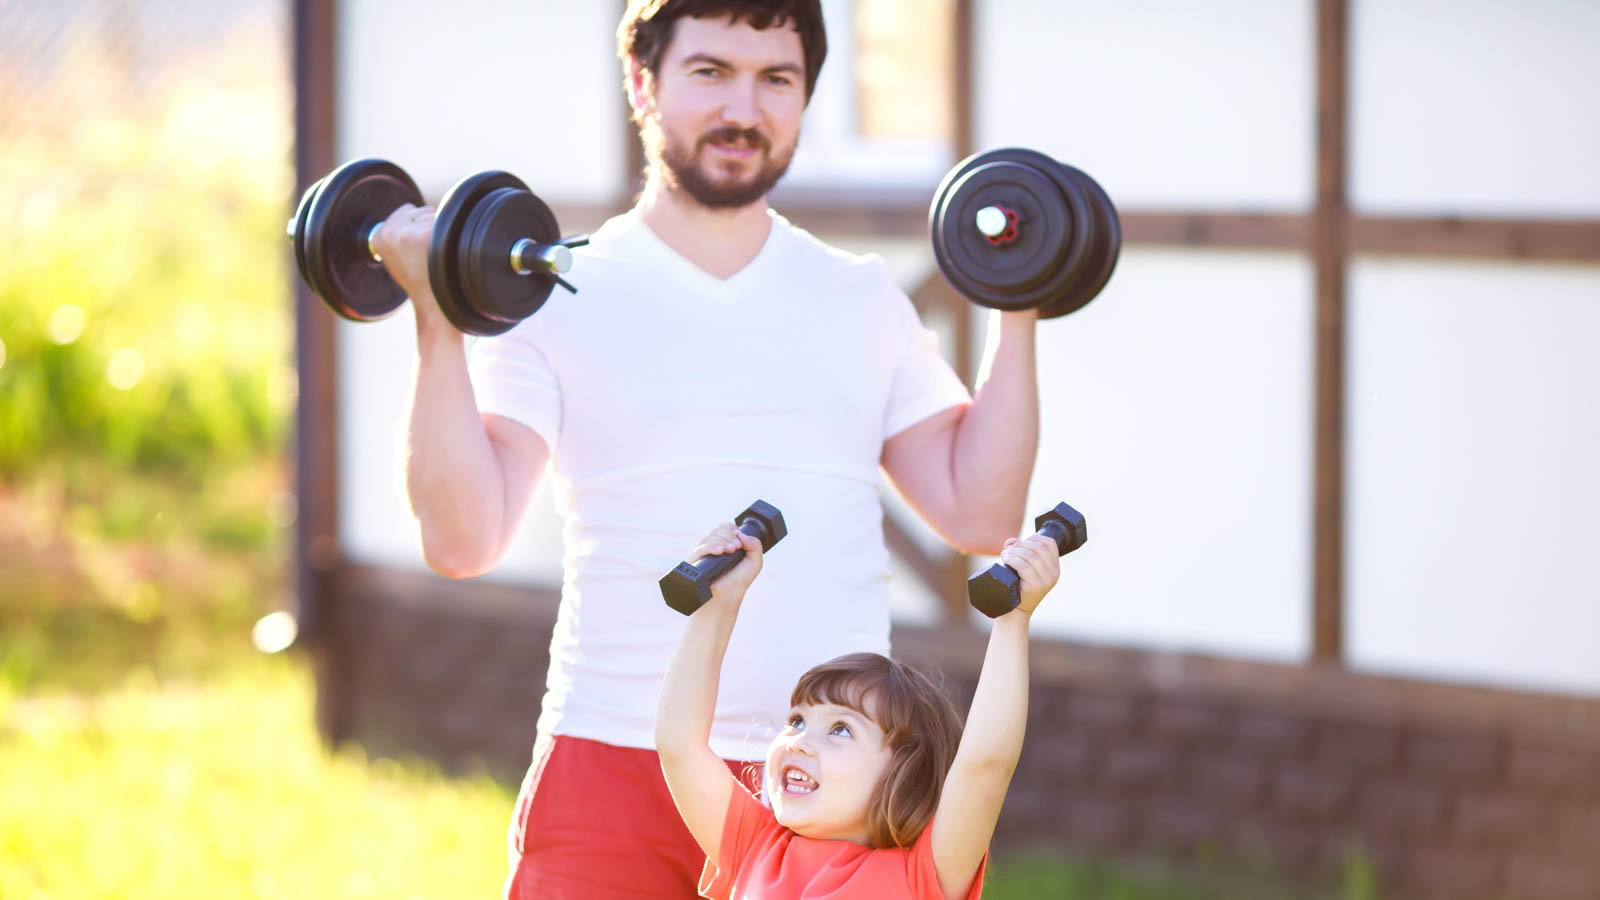 dad lifting weights with daughter